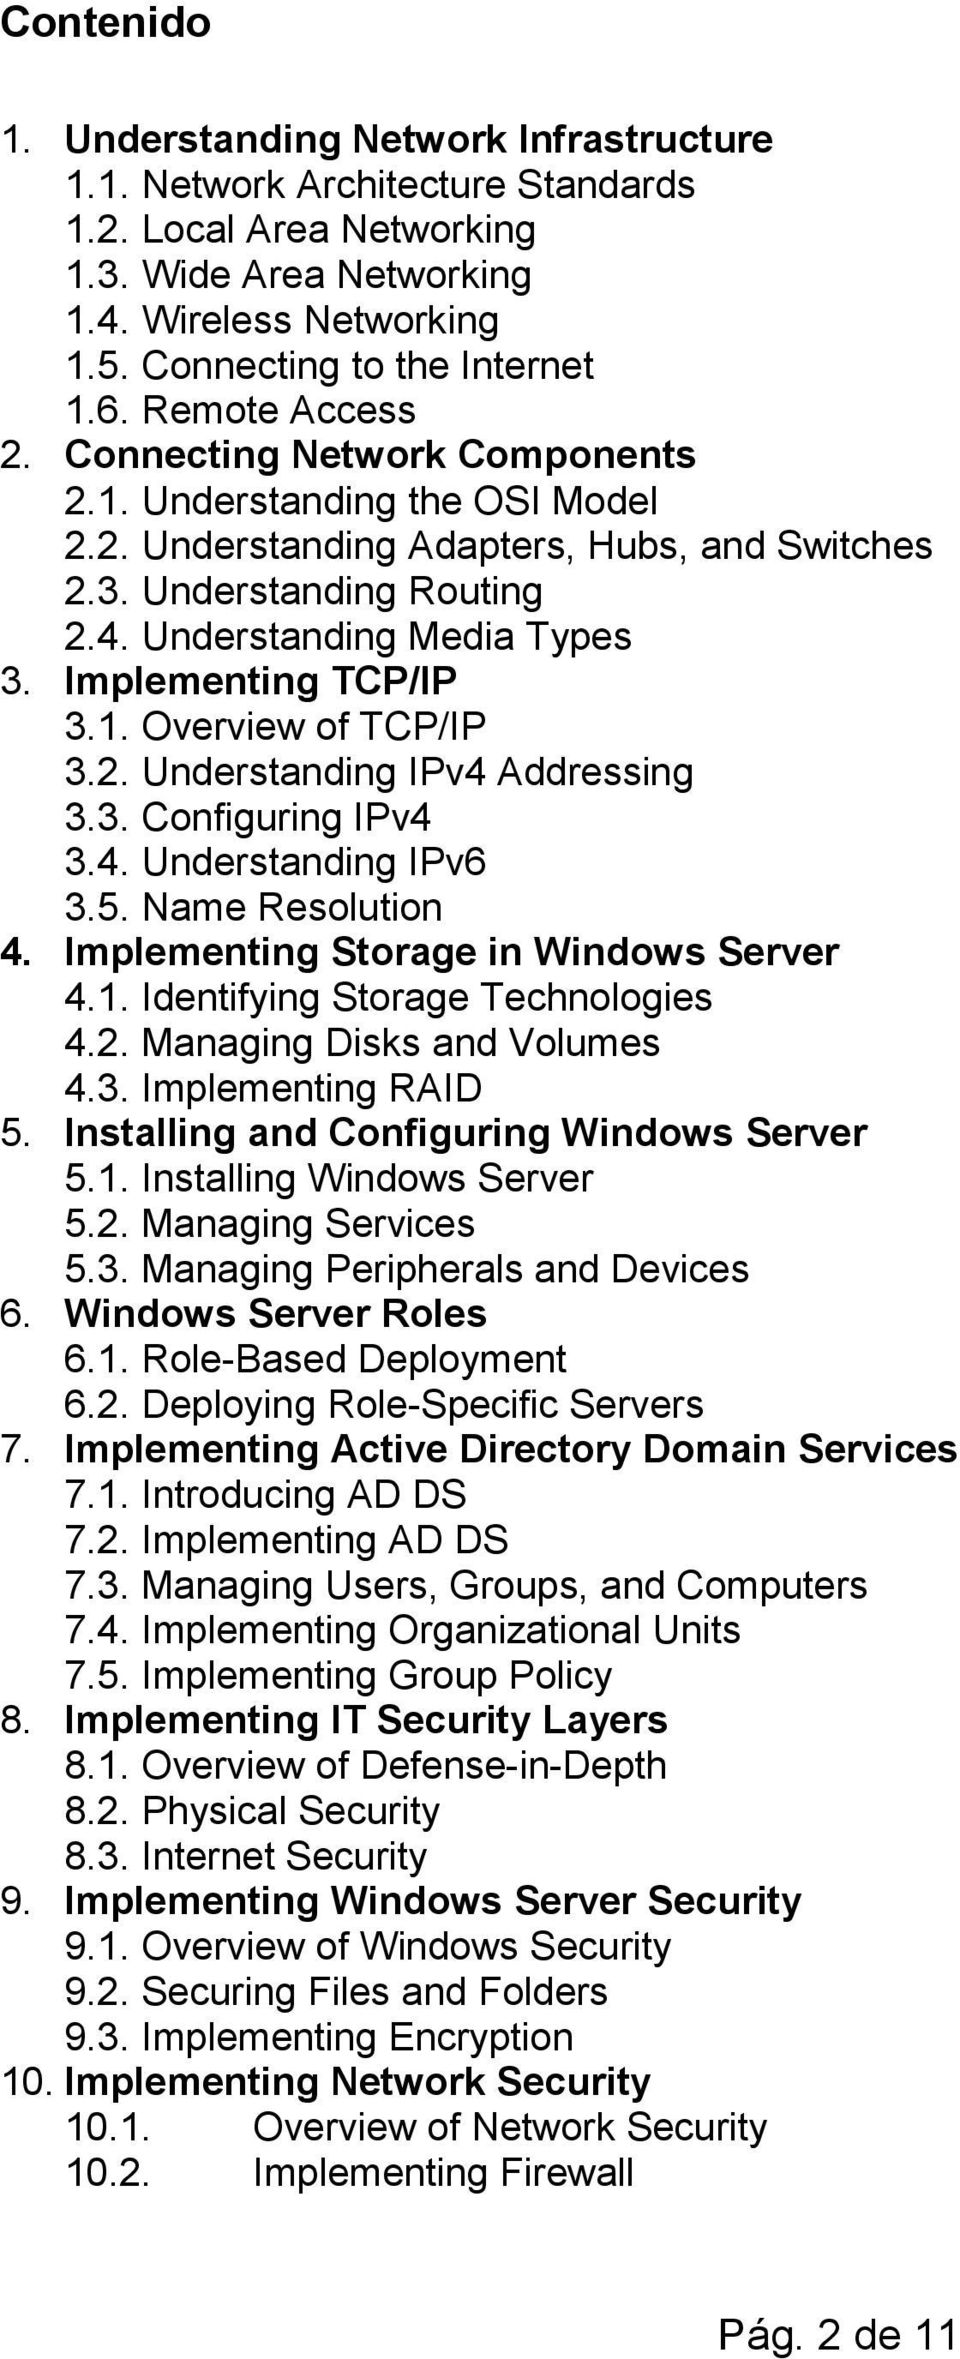 Implementing TCP/IP 3.1. Overview of TCP/IP 3.2. Understanding IPv4 Addressing 3.3. Configuring IPv4 3.4. Understanding IPv6 3.5. Name Resolution 4. Implementing Storage in Windows Server 4.1. Identifying Storage Technologies 4.